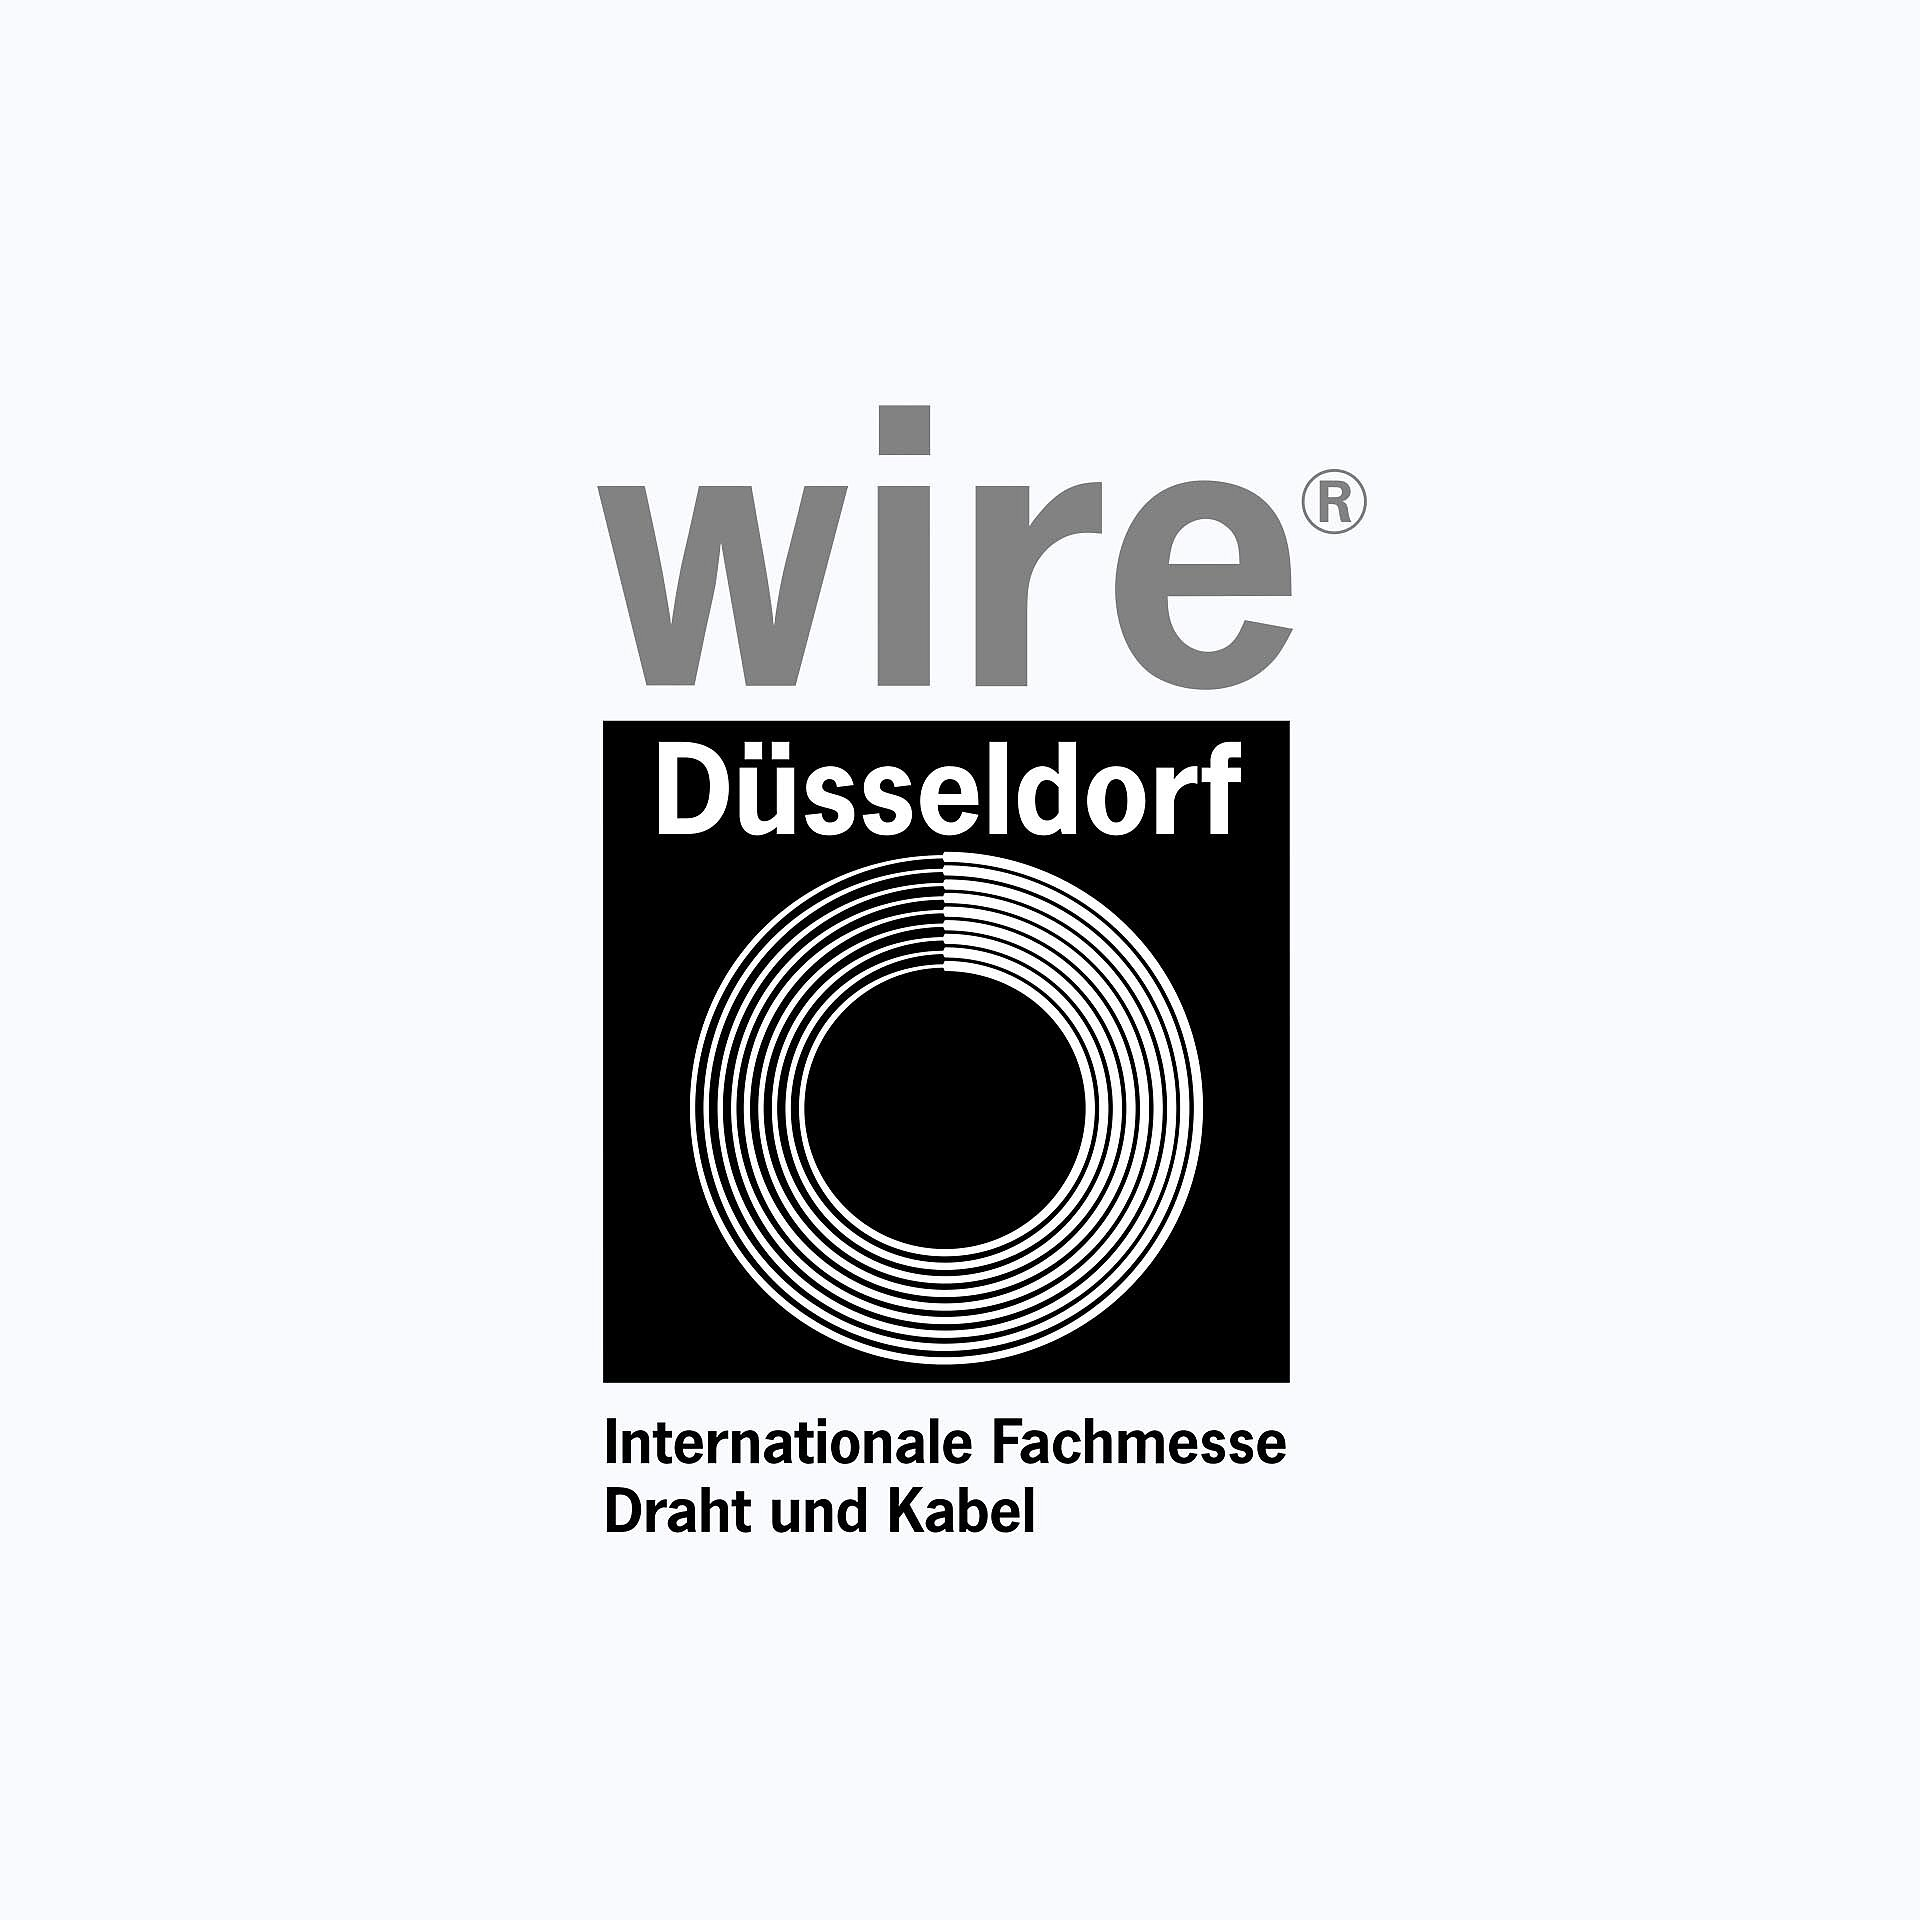 [Translate to Chinese:] wire Düsseldorf